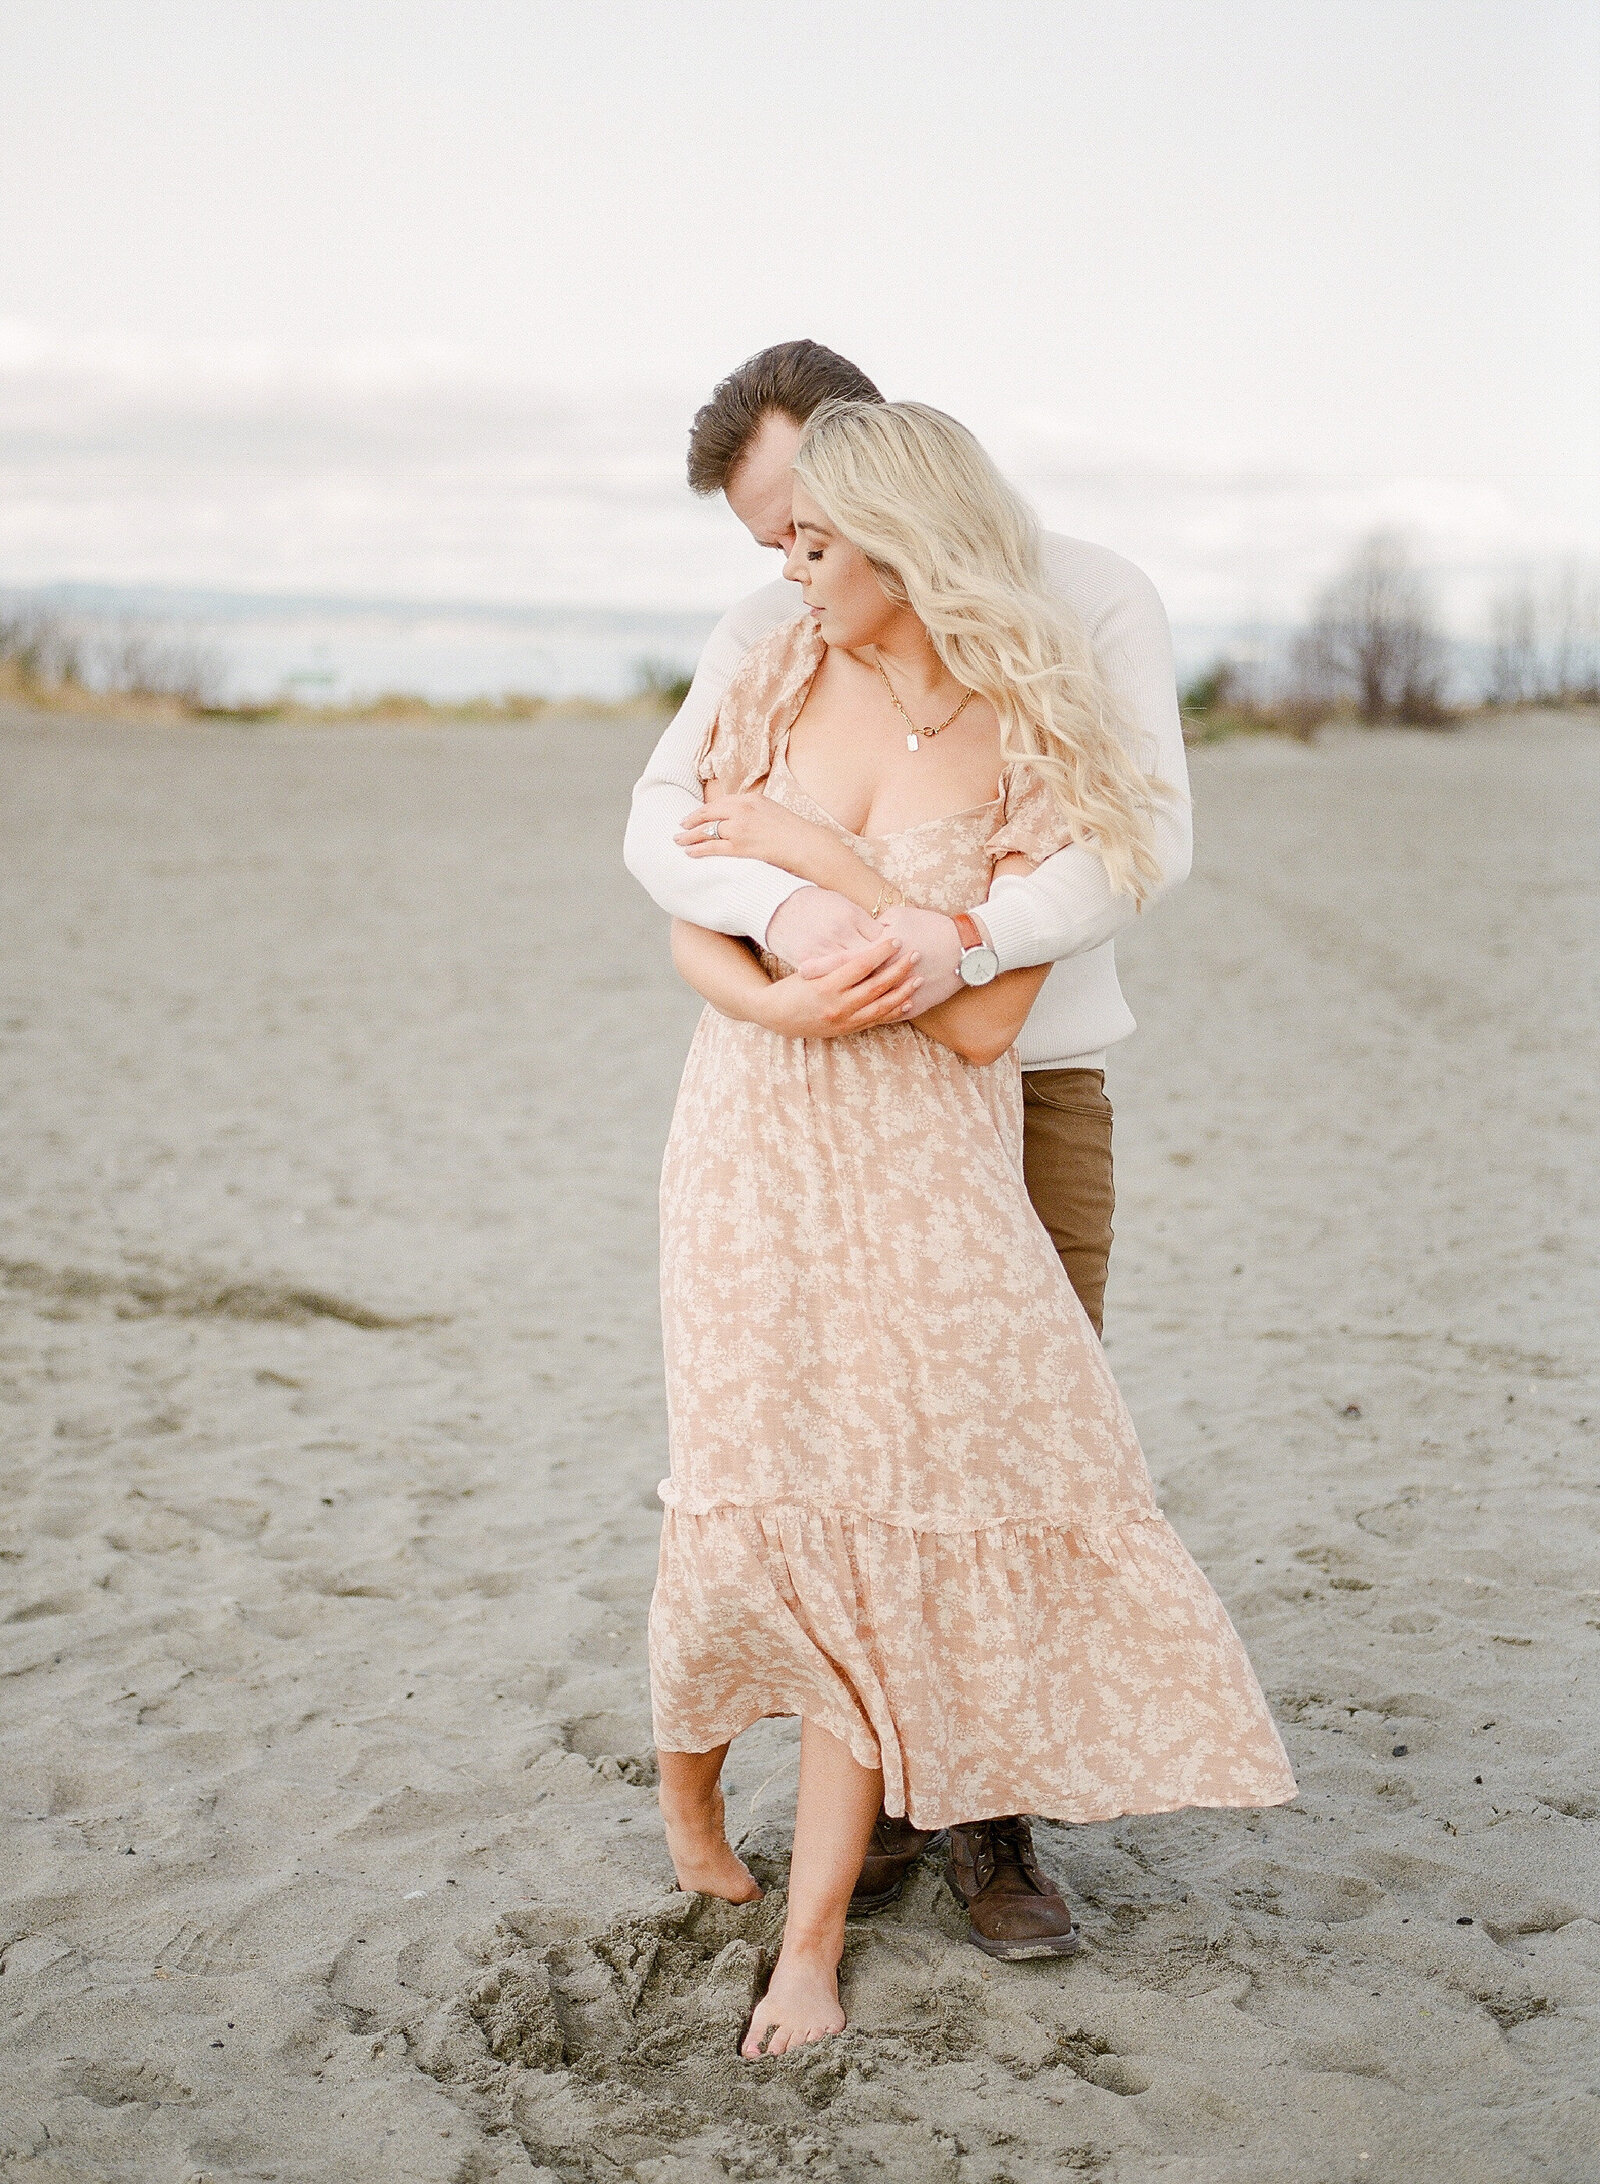 Brittany and Steven - Golden Gardens Park - Kerry Jeanne Photography (143 of 200)